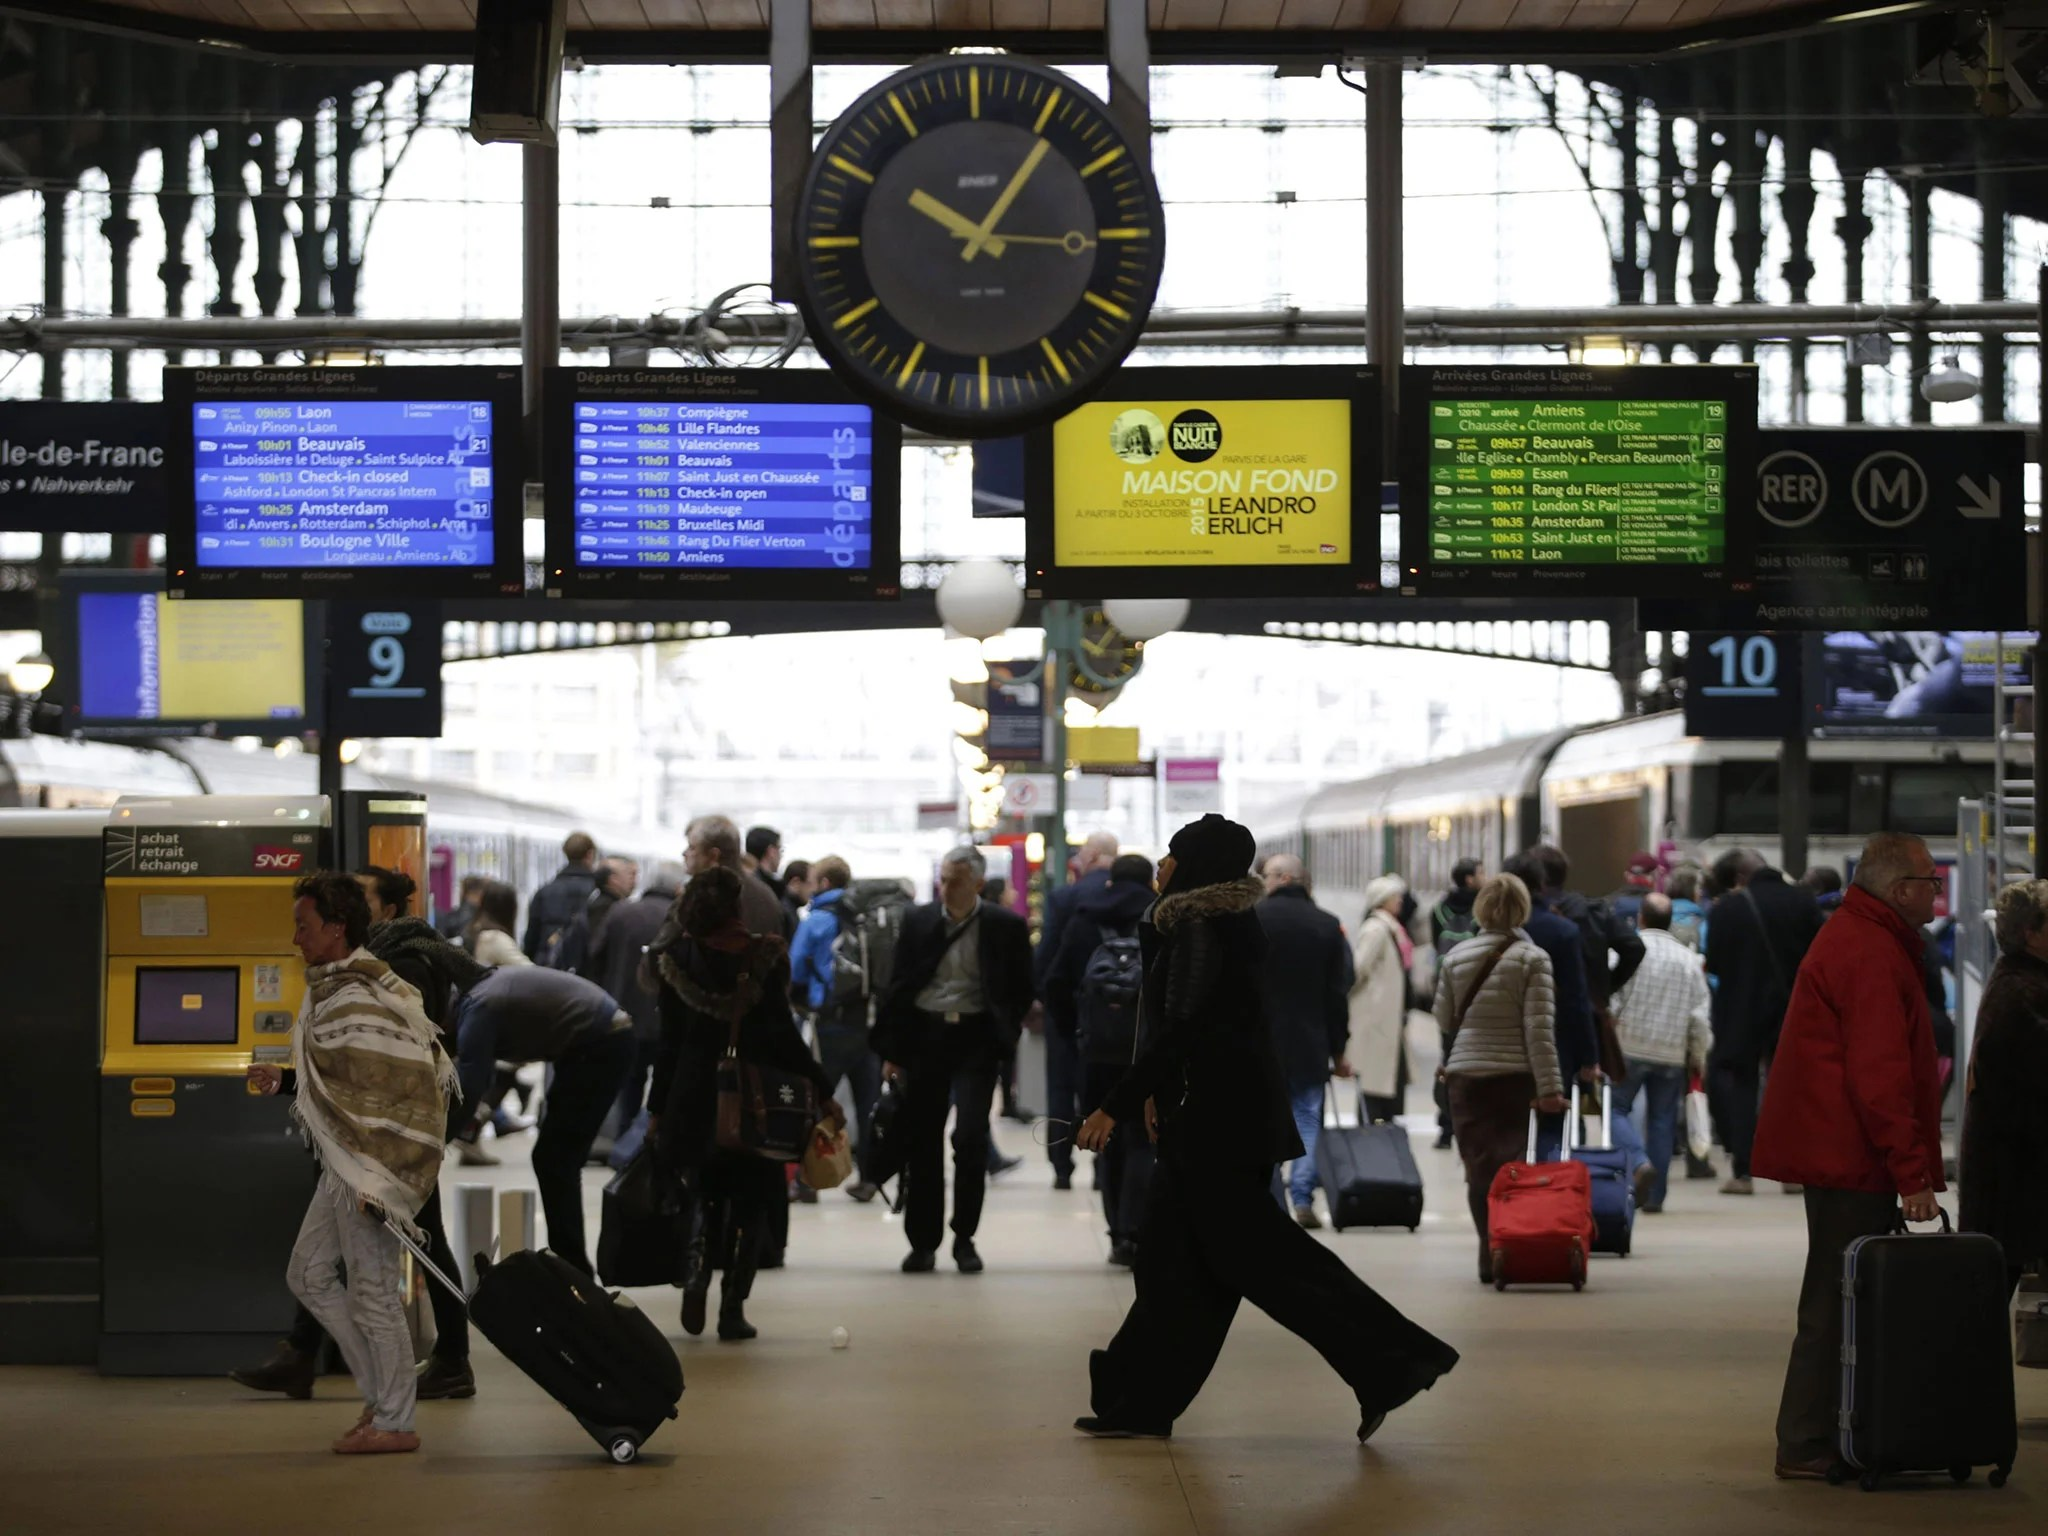 Ashford Paris Paris Train Station Evacuated After Second World War Shell Found